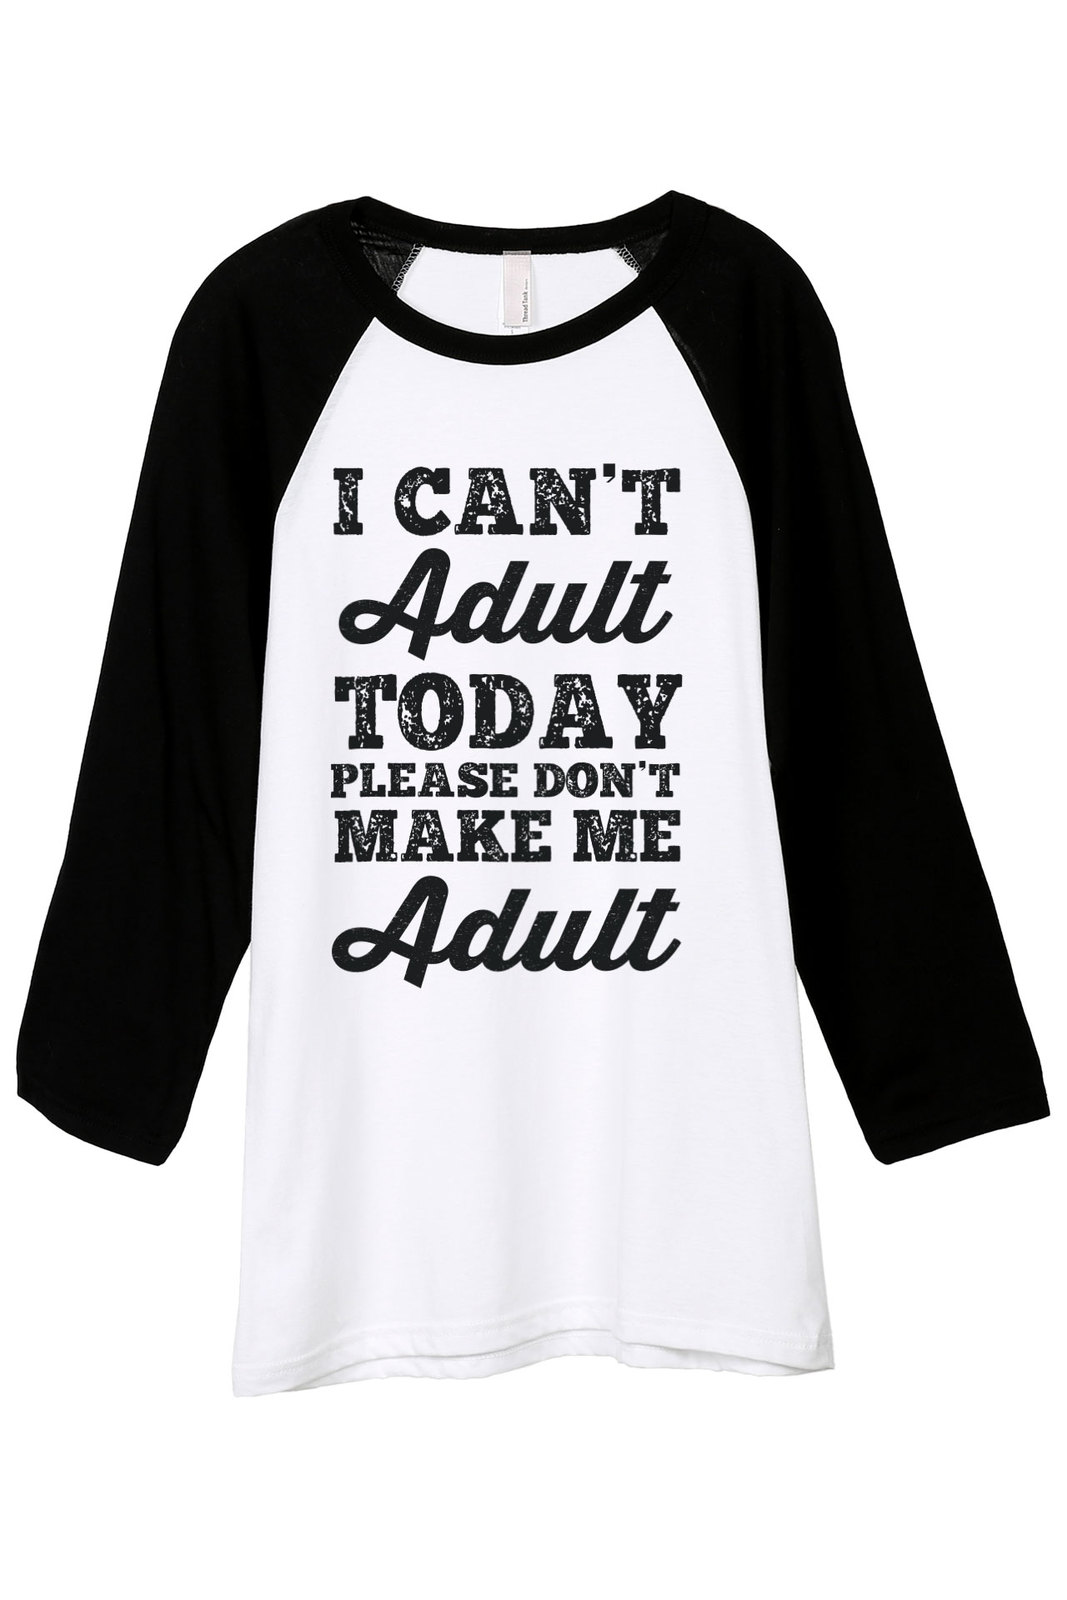 Thread Tank I Cant Adult Today Please Dont Make Me Adult Unisex 3/4 Sleeves Base - $24.99 - $25.99